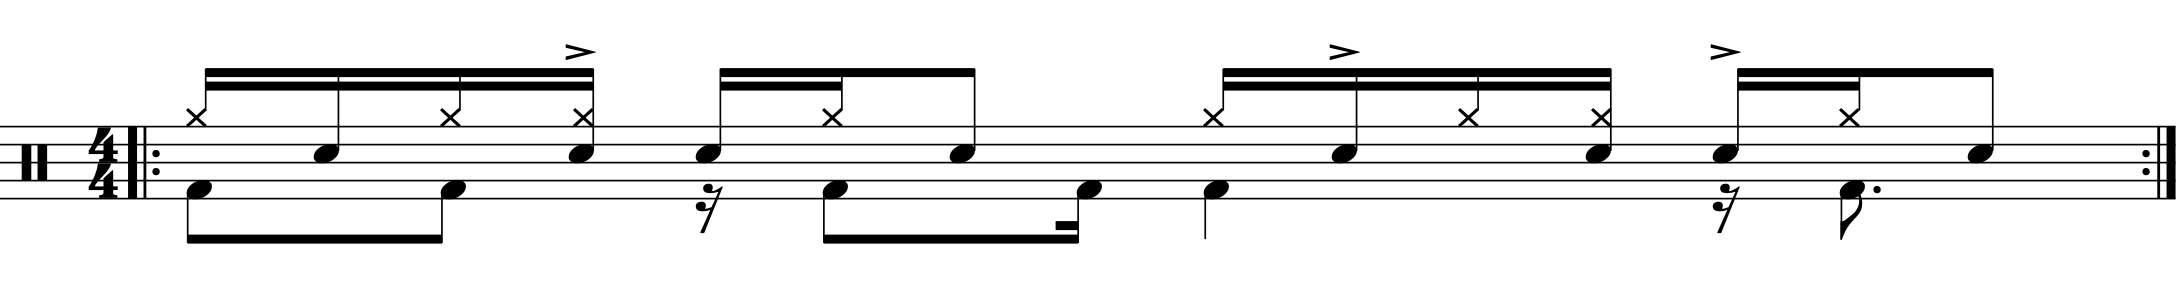 Implied Paradiddle rhythm